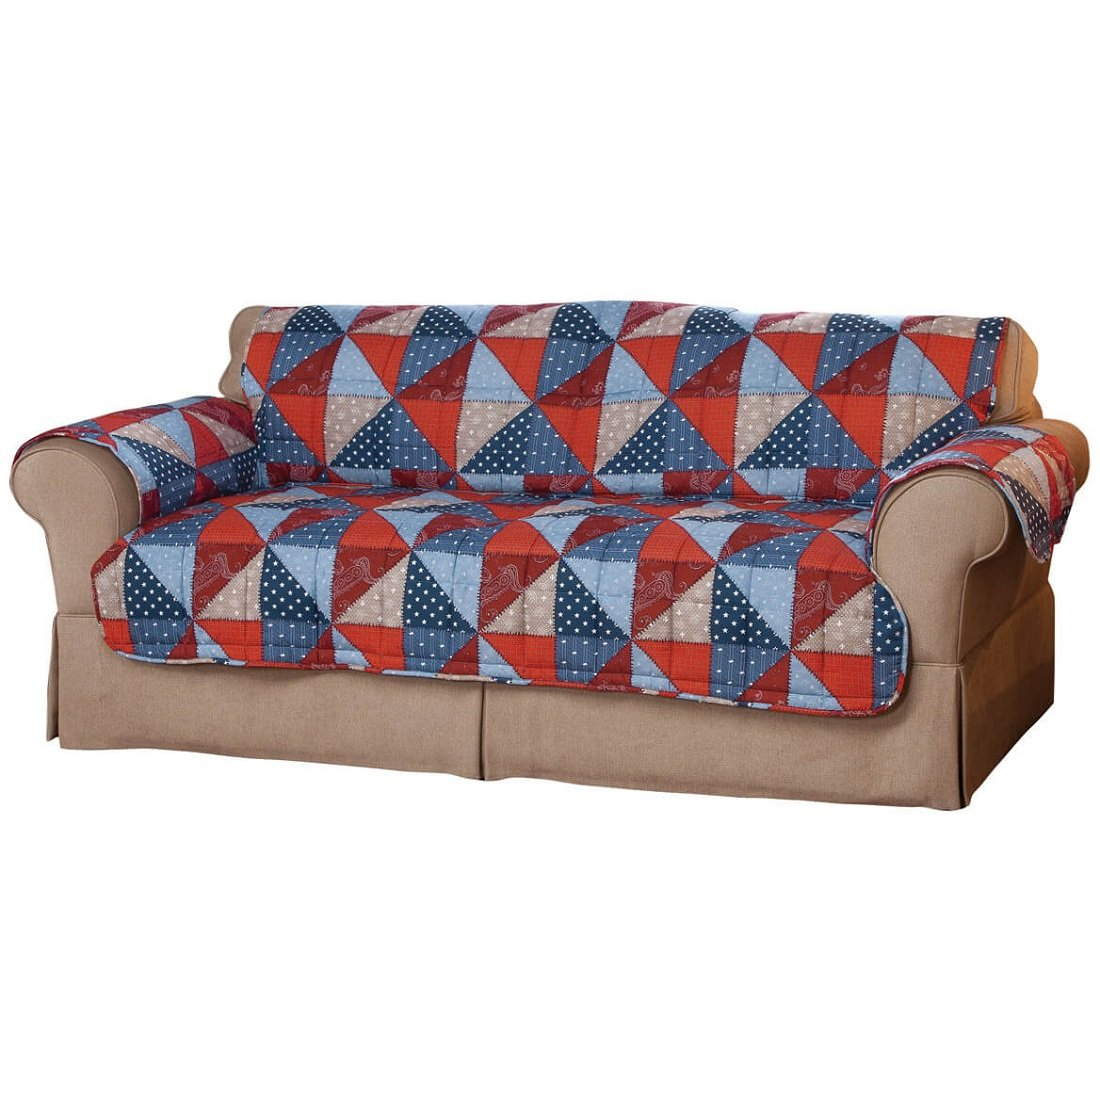 MS Home Patriotic Anti-Stain Red Blue Sofa Slipcover - Liquid-Repellent with long backs and tuck-in flaps - Seat: 36.5'' L x 68'' W, Back: 39'' L x 68'' W